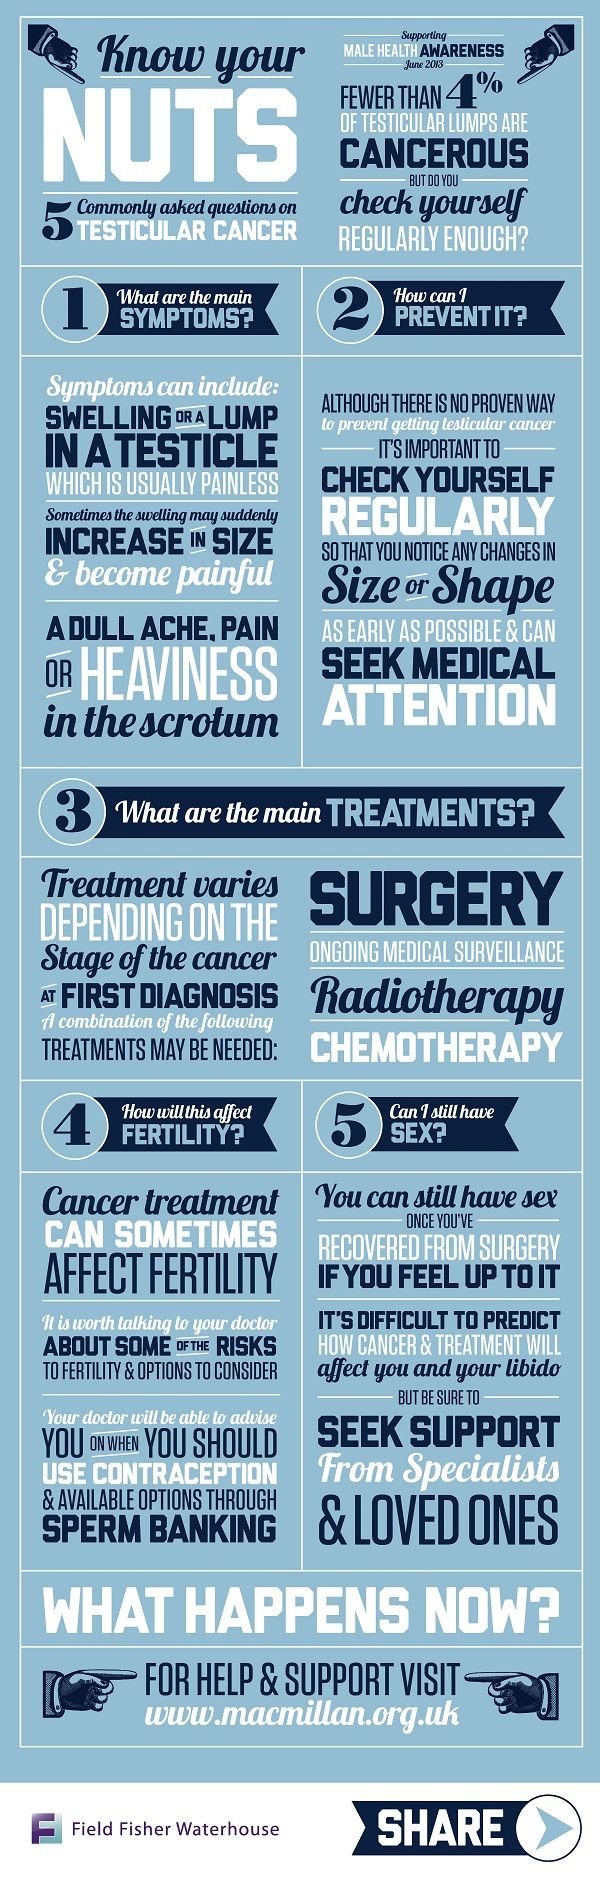 Know Your Nuts: An FAQ on Testicluar Cancer [Infographic] JULY 17, 2013 |  BY ERIC LYDAY  |  HEALTH